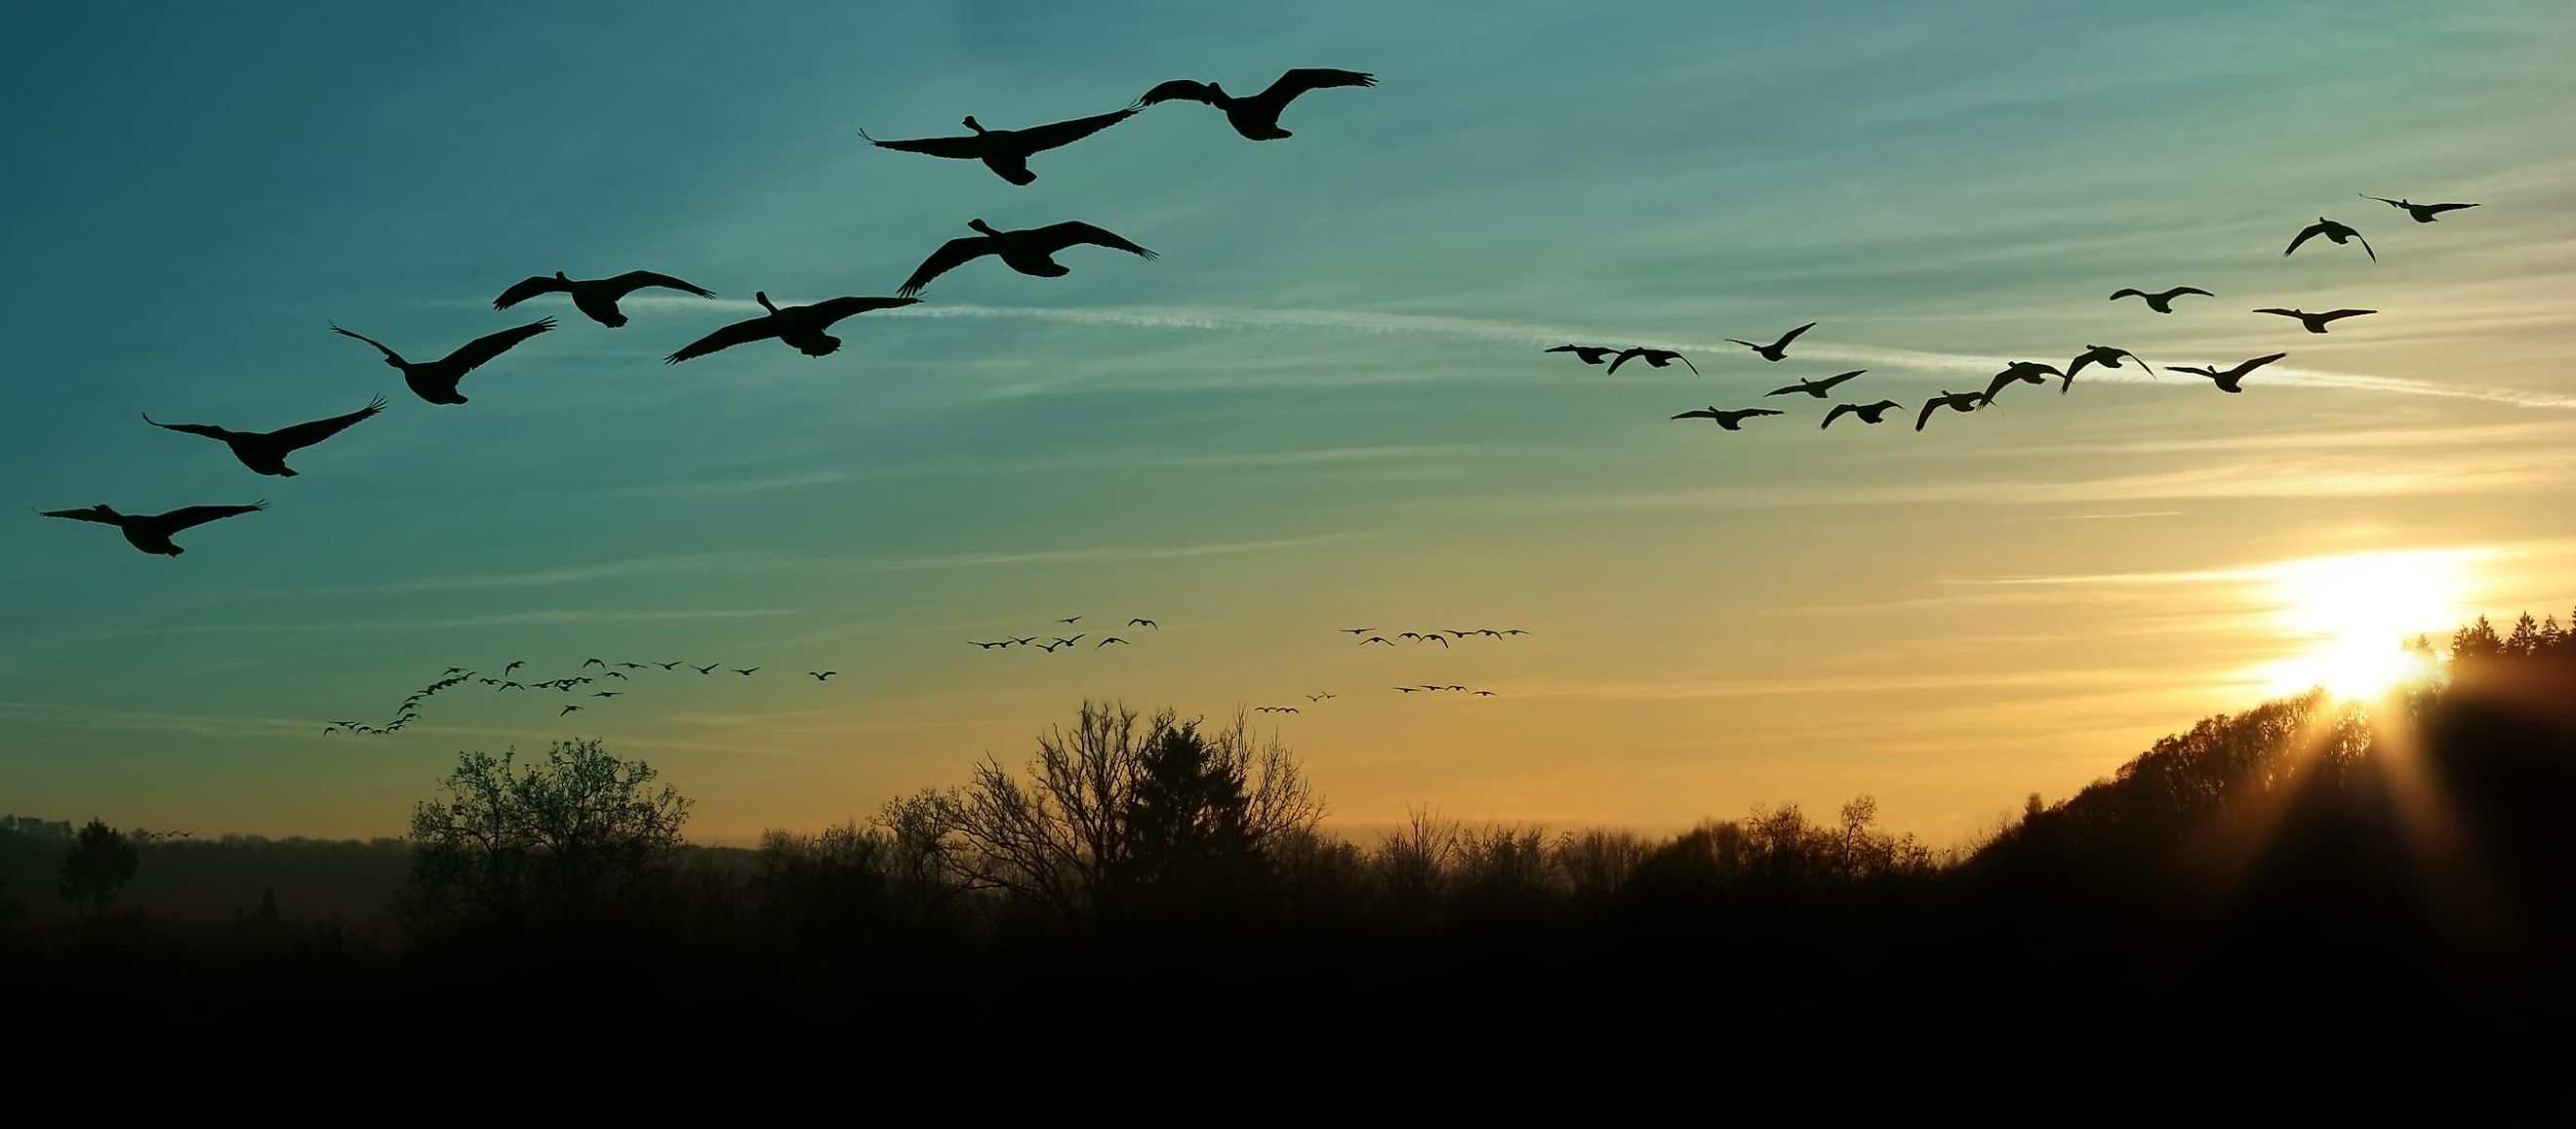 Migrating Canada geese. Image credit: zizar/Shutterstock